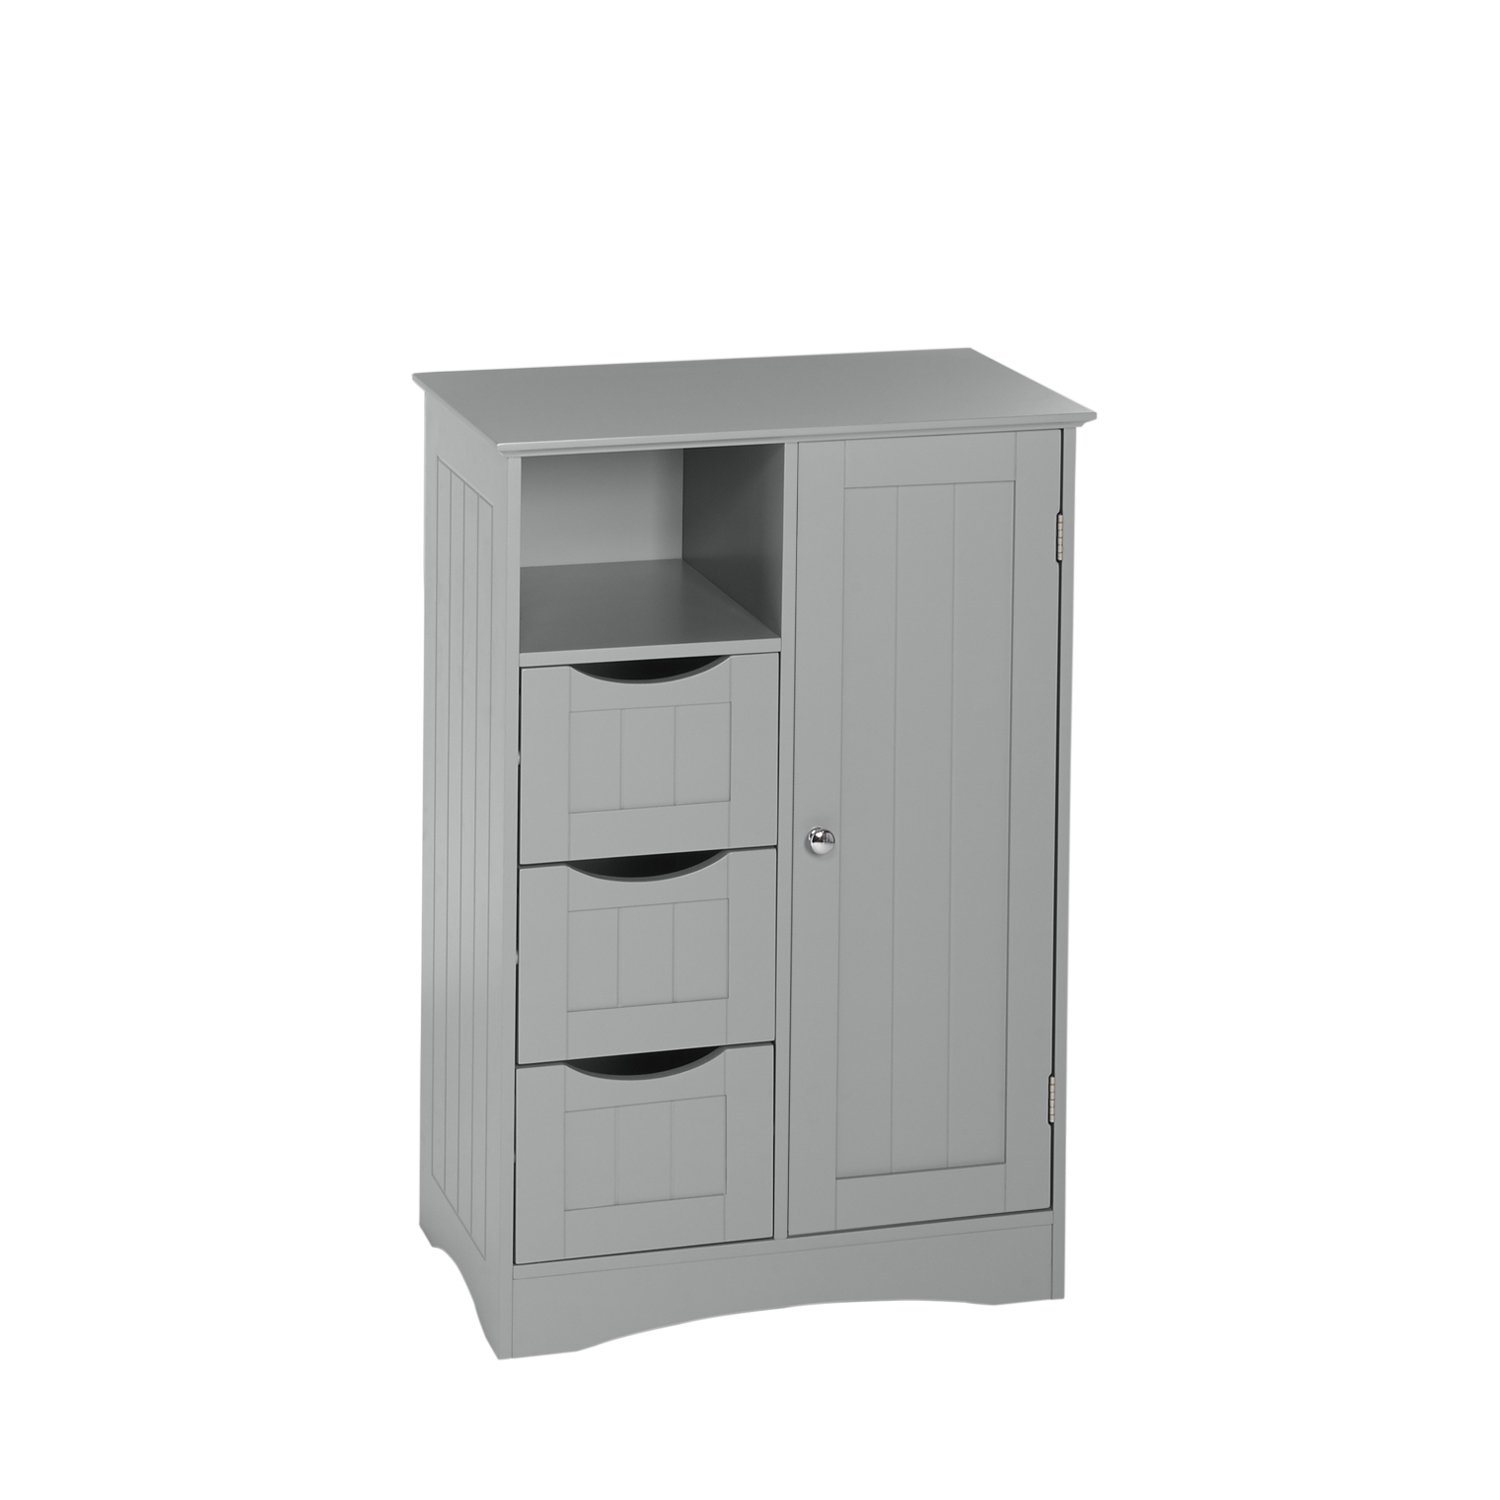 RiverRidge Ashland Collection 1 Door, 3 Drawer Floor Cabinet, Gray